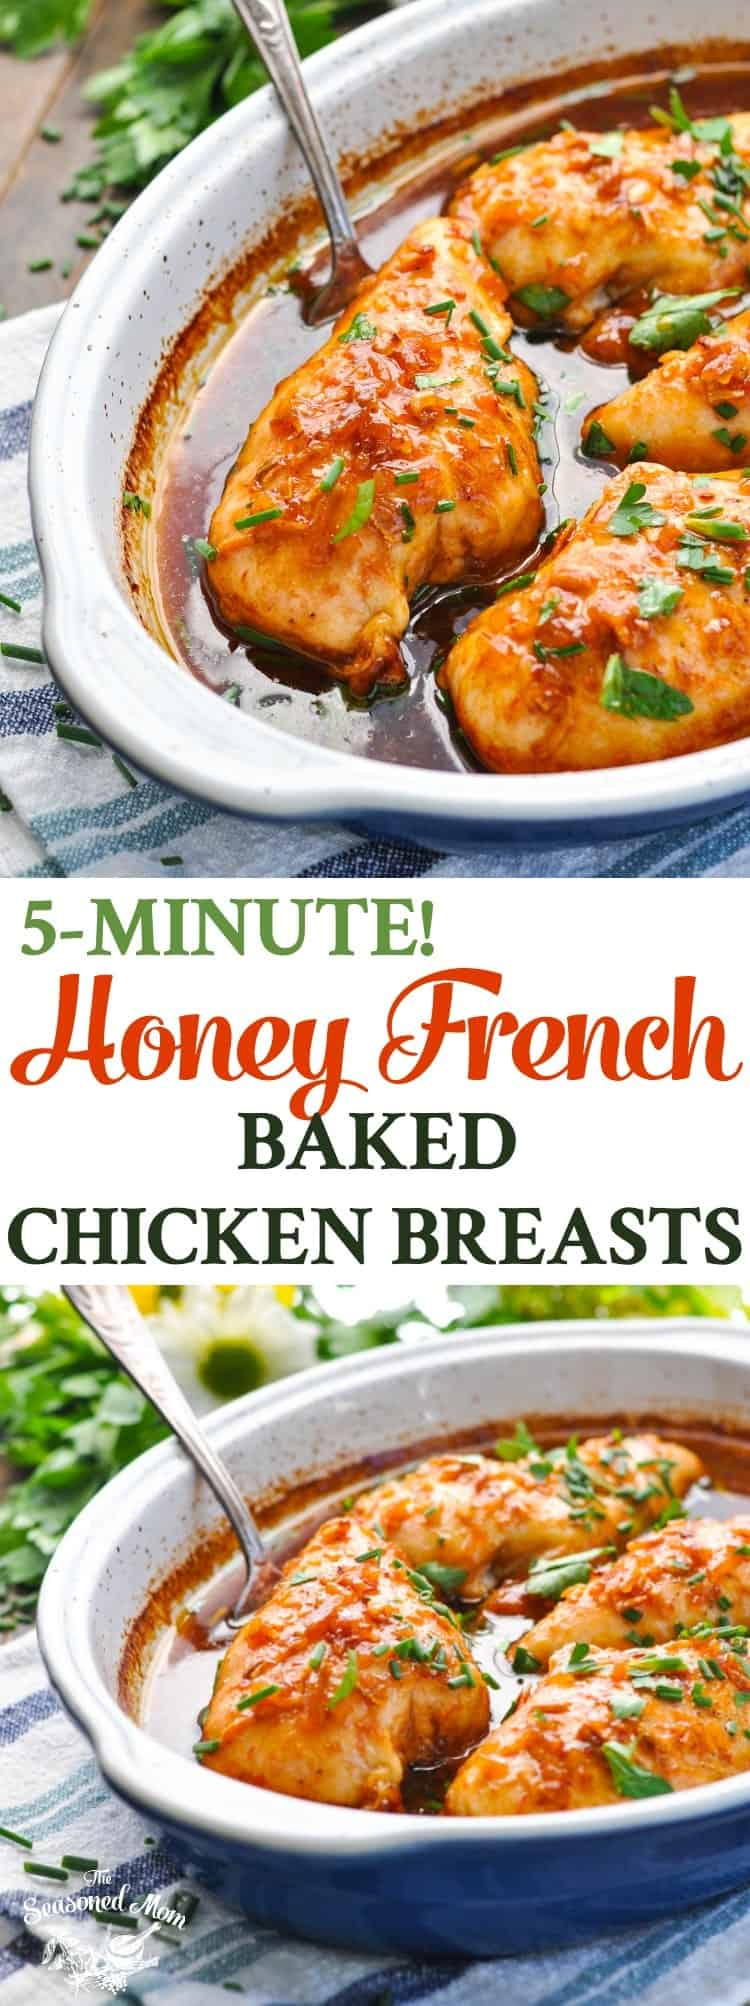 These 5-Minute Honey French Baked Chicken Breasts are an easy dinner recipe for busy weeknights! Chicken Breast Recipes | Dinner Ideas | Baked Chicken Recipes